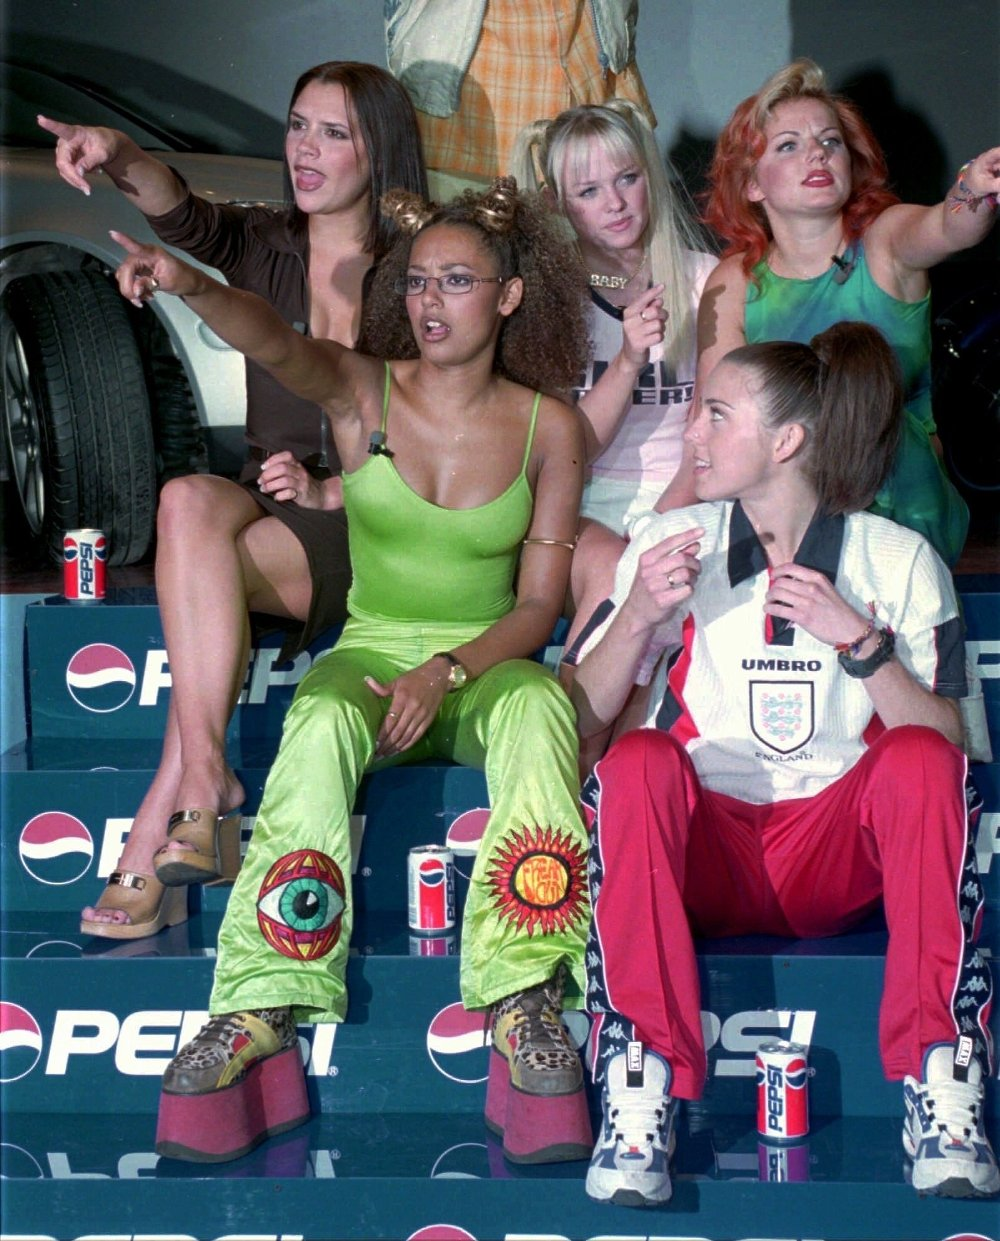 Klikk på bildet for å forstørre. VICTORIA EMMA GERI MELB MELC World famous pop group Spice Girls first row from left to right; Victoria, Emma, Geri, 2nd row left to right; Mel B and Mel C gesture during a press conference in Istanbul on Saturday May 31, 1997. The Spice Girls will perform in concert in Istanbul's Inonu Stadium on October 12th.